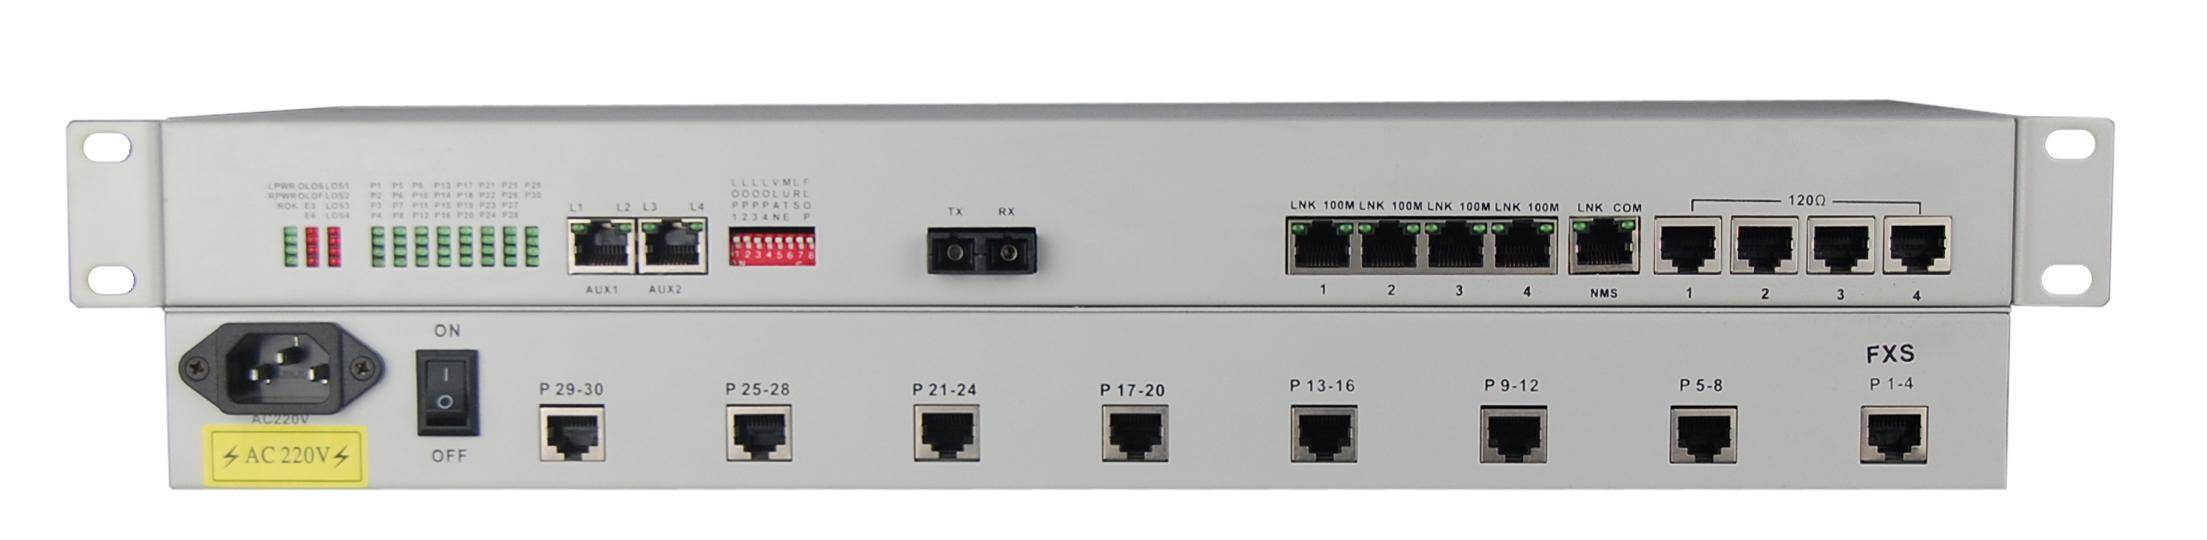 Voice fiber optical multiplexer with 30*FXS/FXO/POTS/E&M,4E1,4Ethernet FE,4RS232